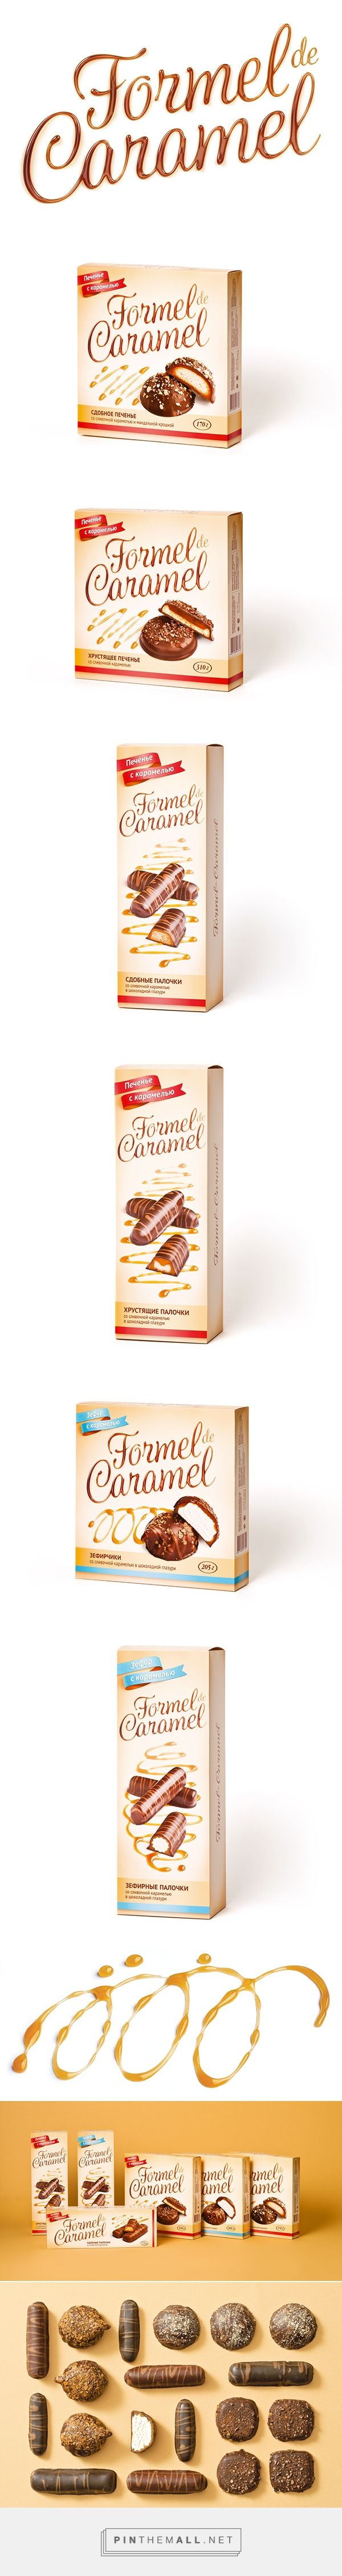 Formel de Caramel on Behance - created via https://pinthemall.net